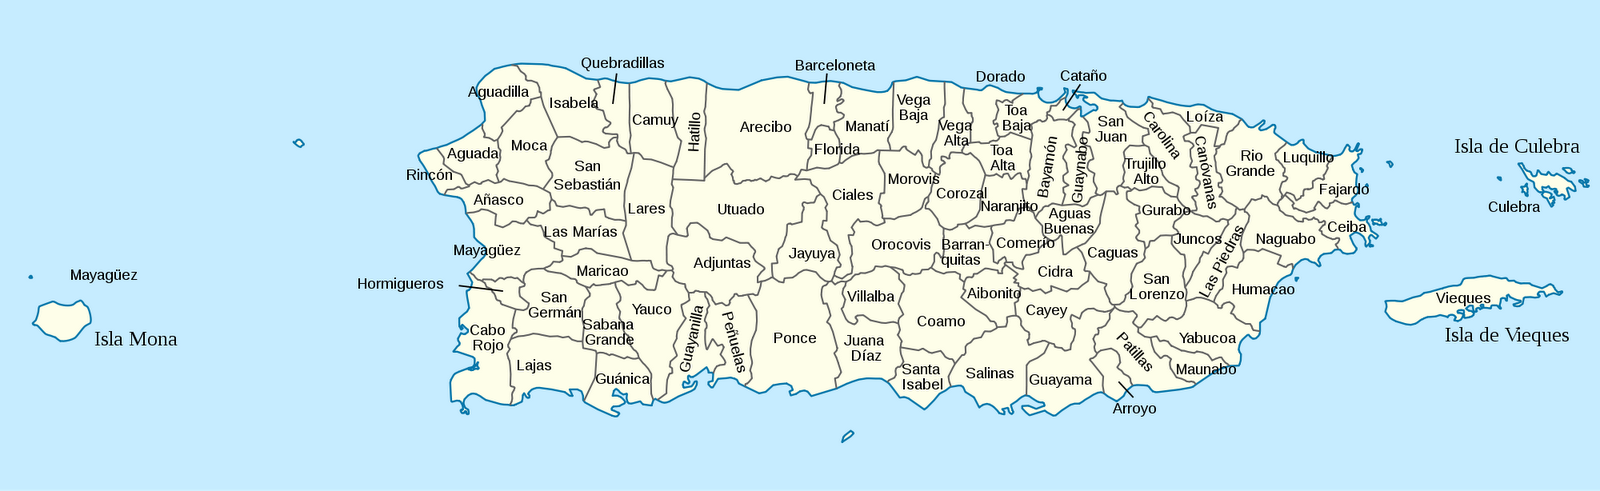 Map of the municipalities of Puerto Rico